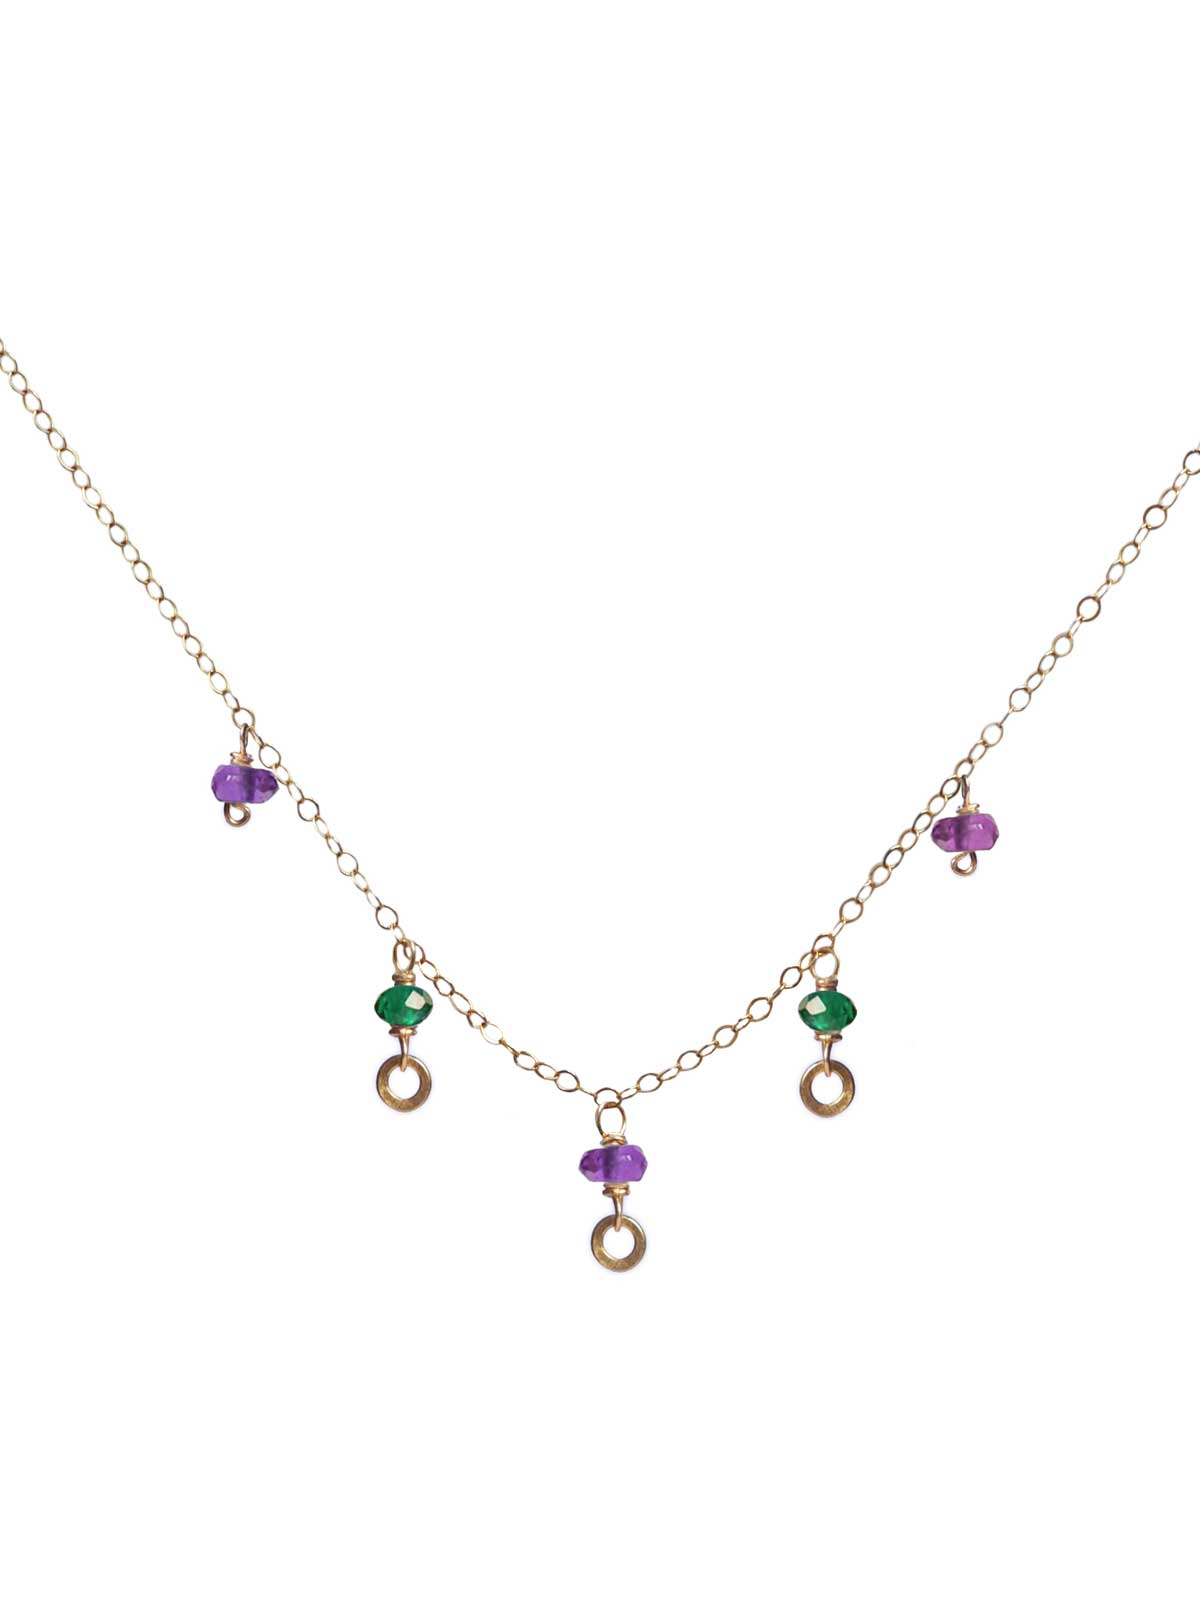 Necklace in 14K Gold-filled chain with Amethyst and Green Onyx